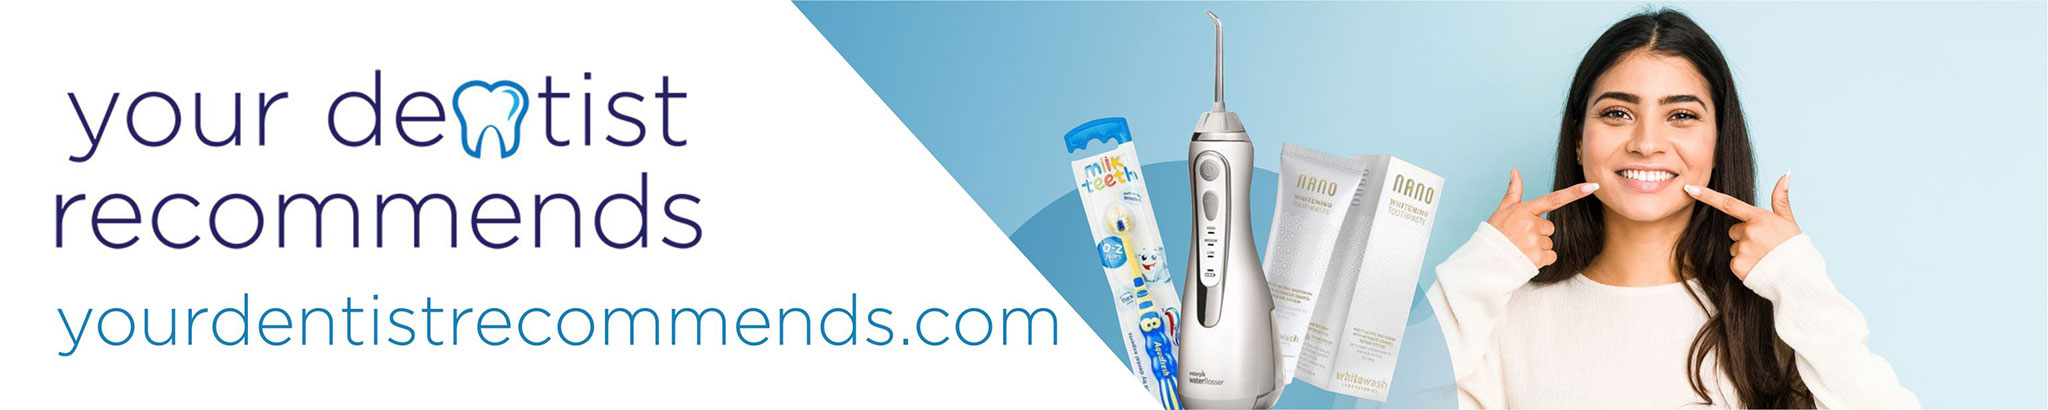 Smile like a dentist - Your Dentist Recommends